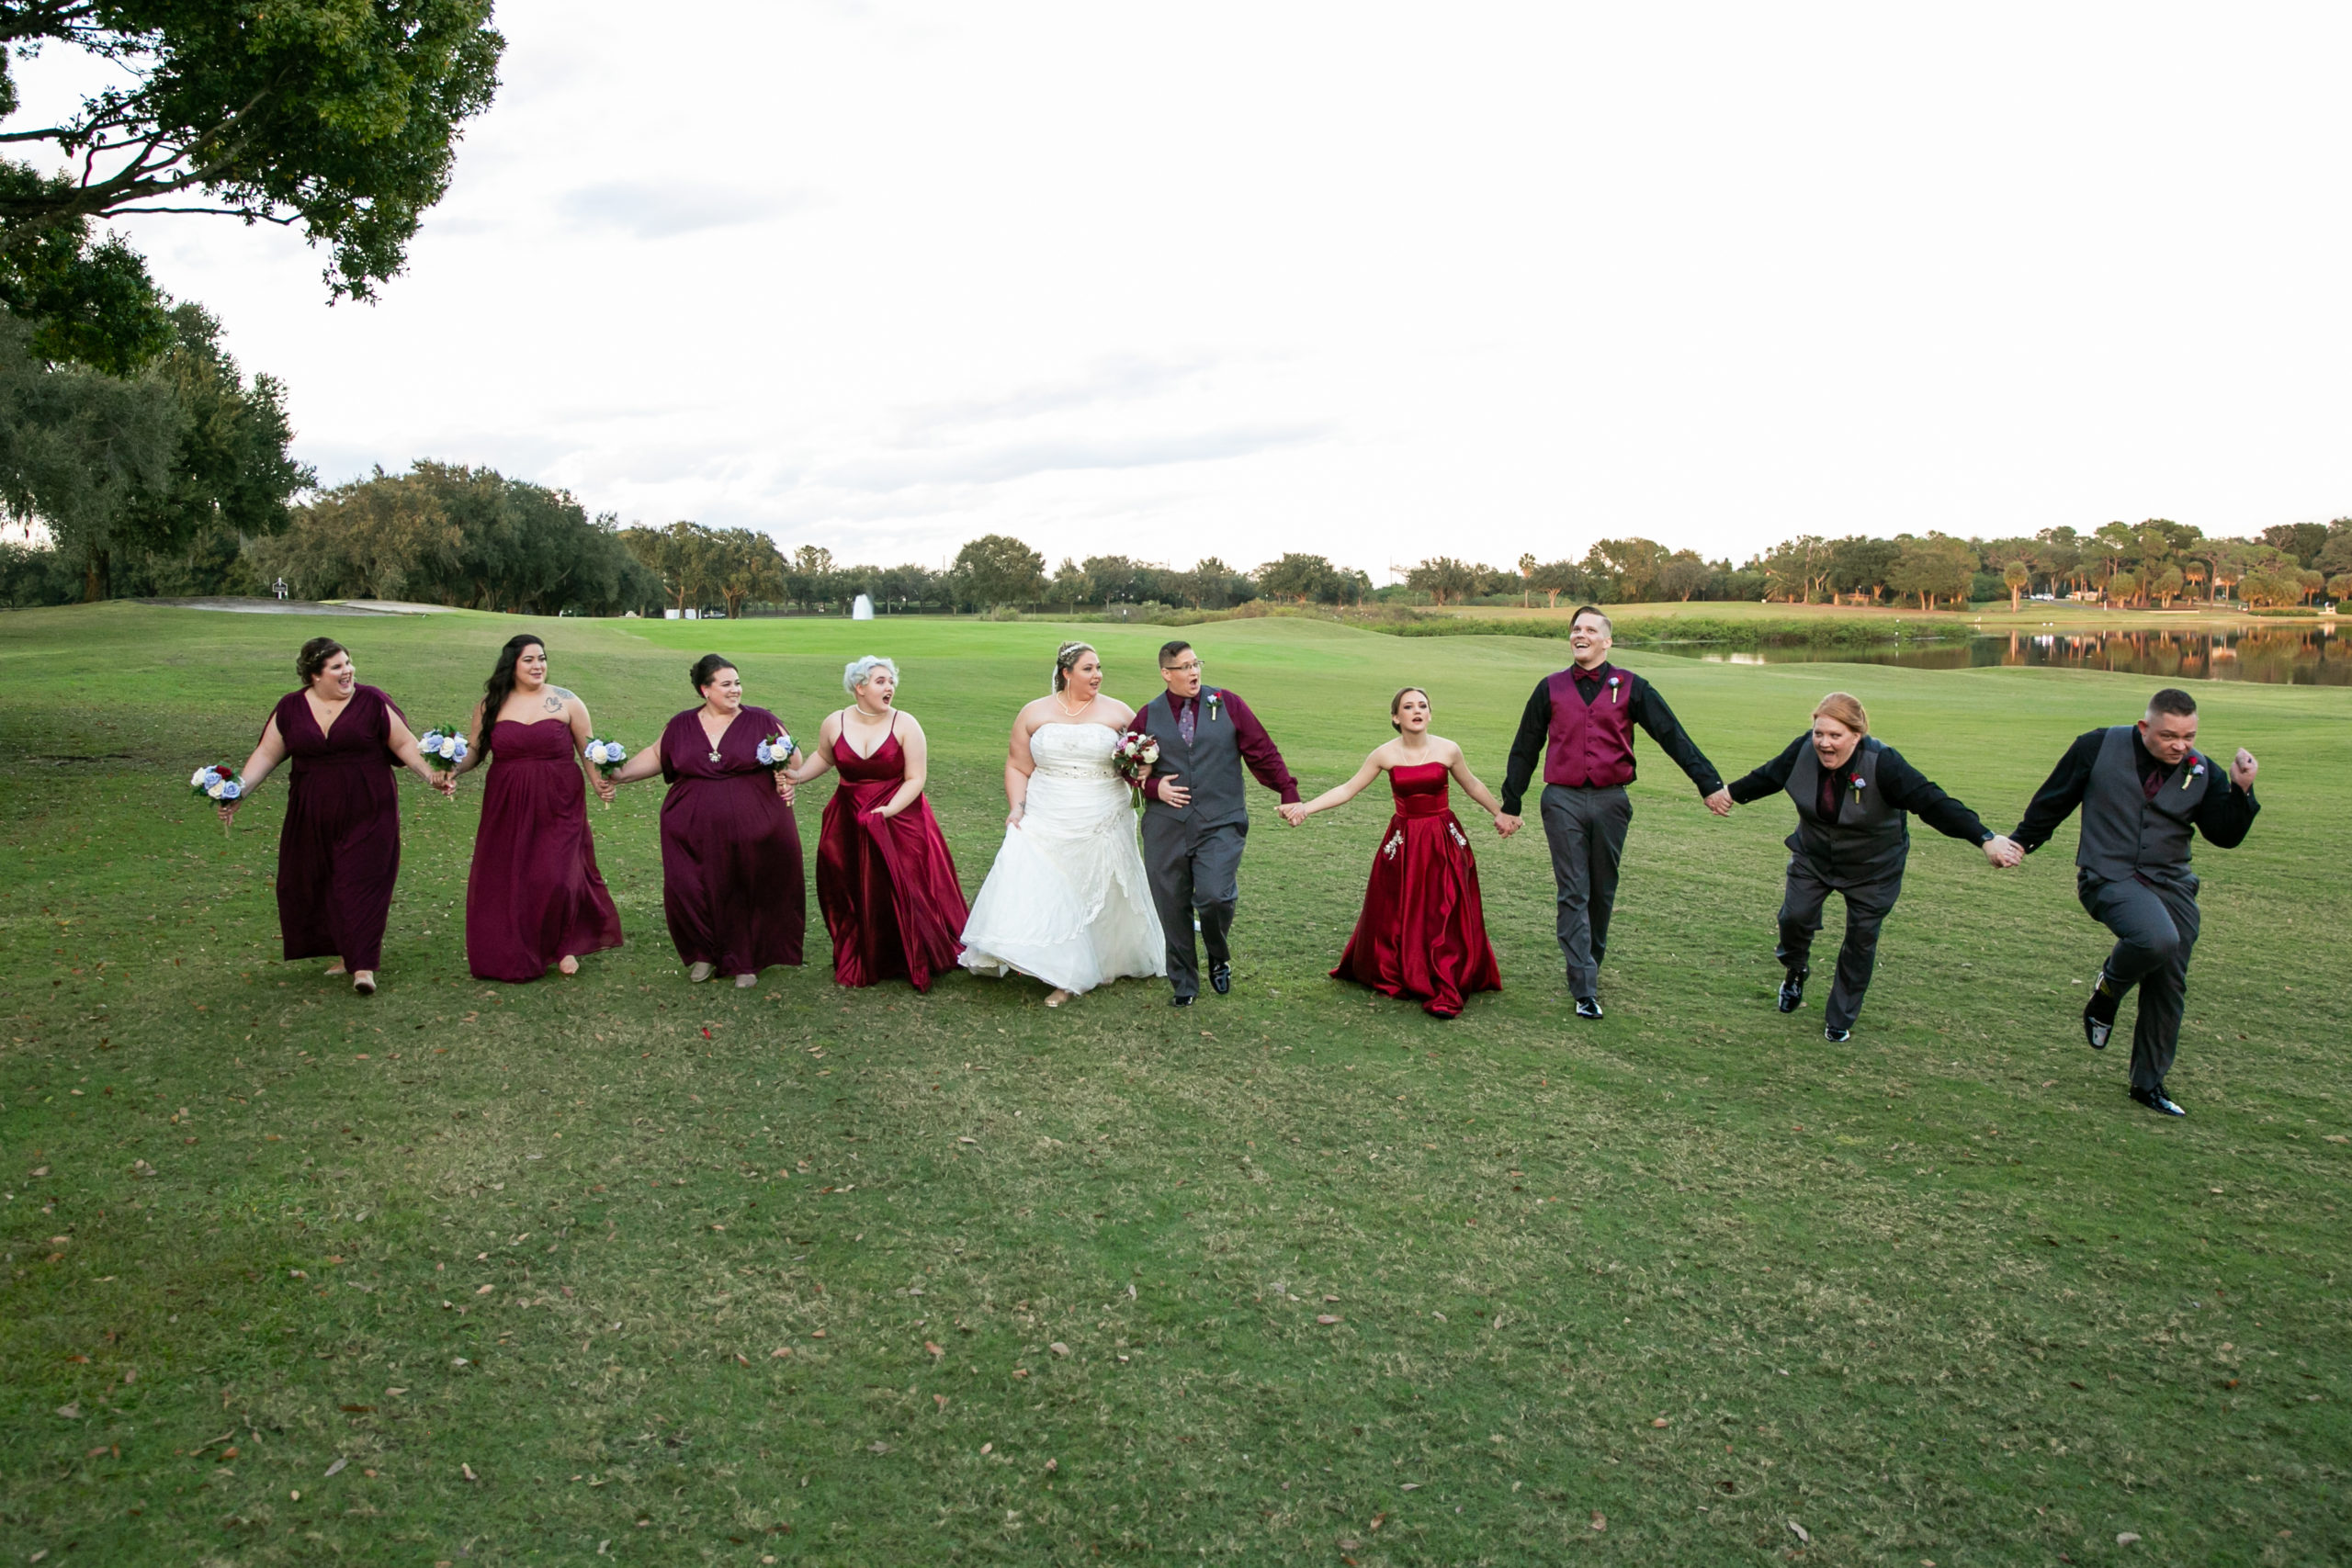 bridal party all holding hands together